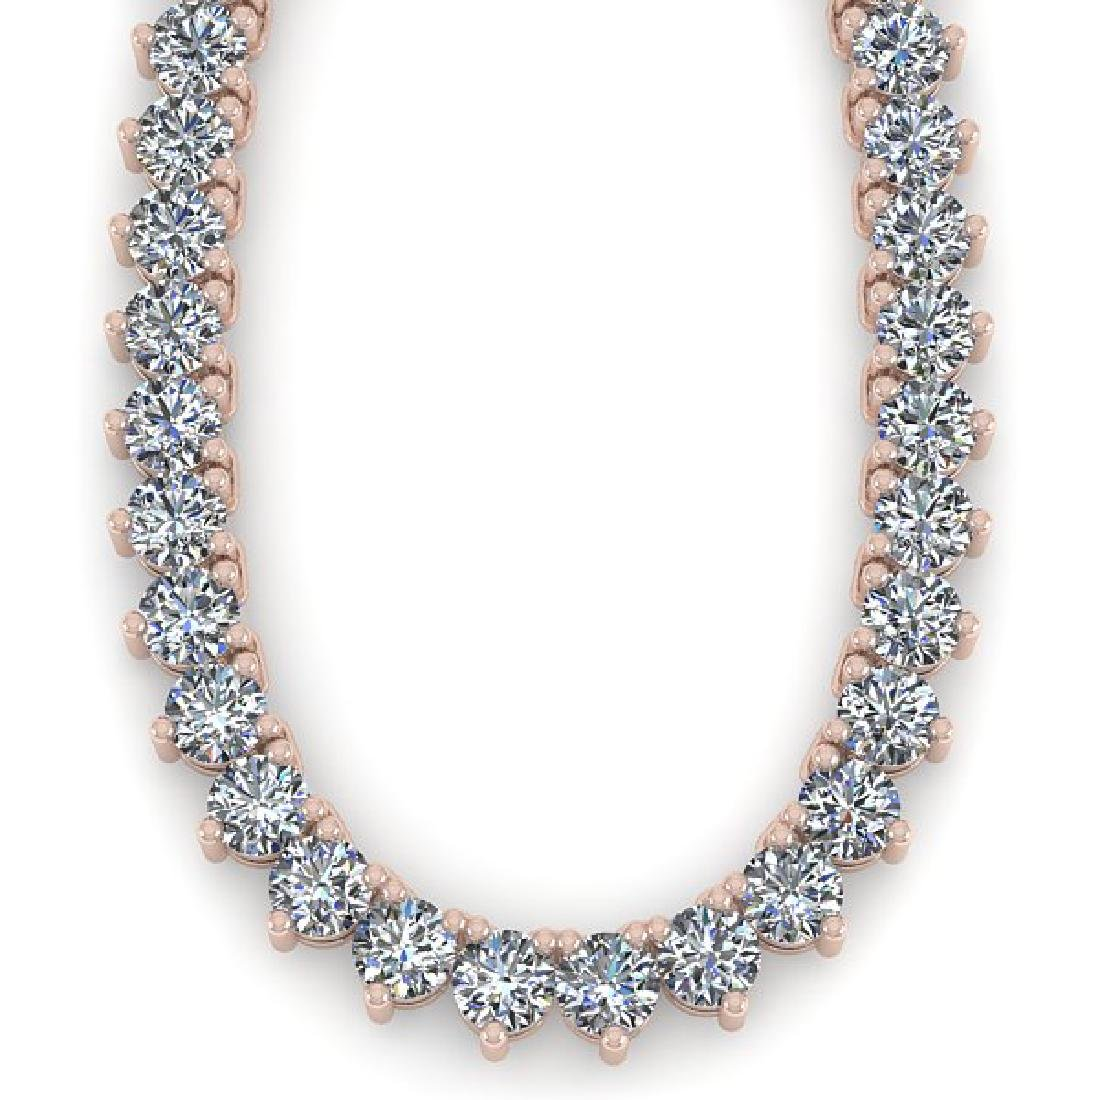 68 CTW Solitaire Certified SI Diamond Necklace 14K Rose - 2